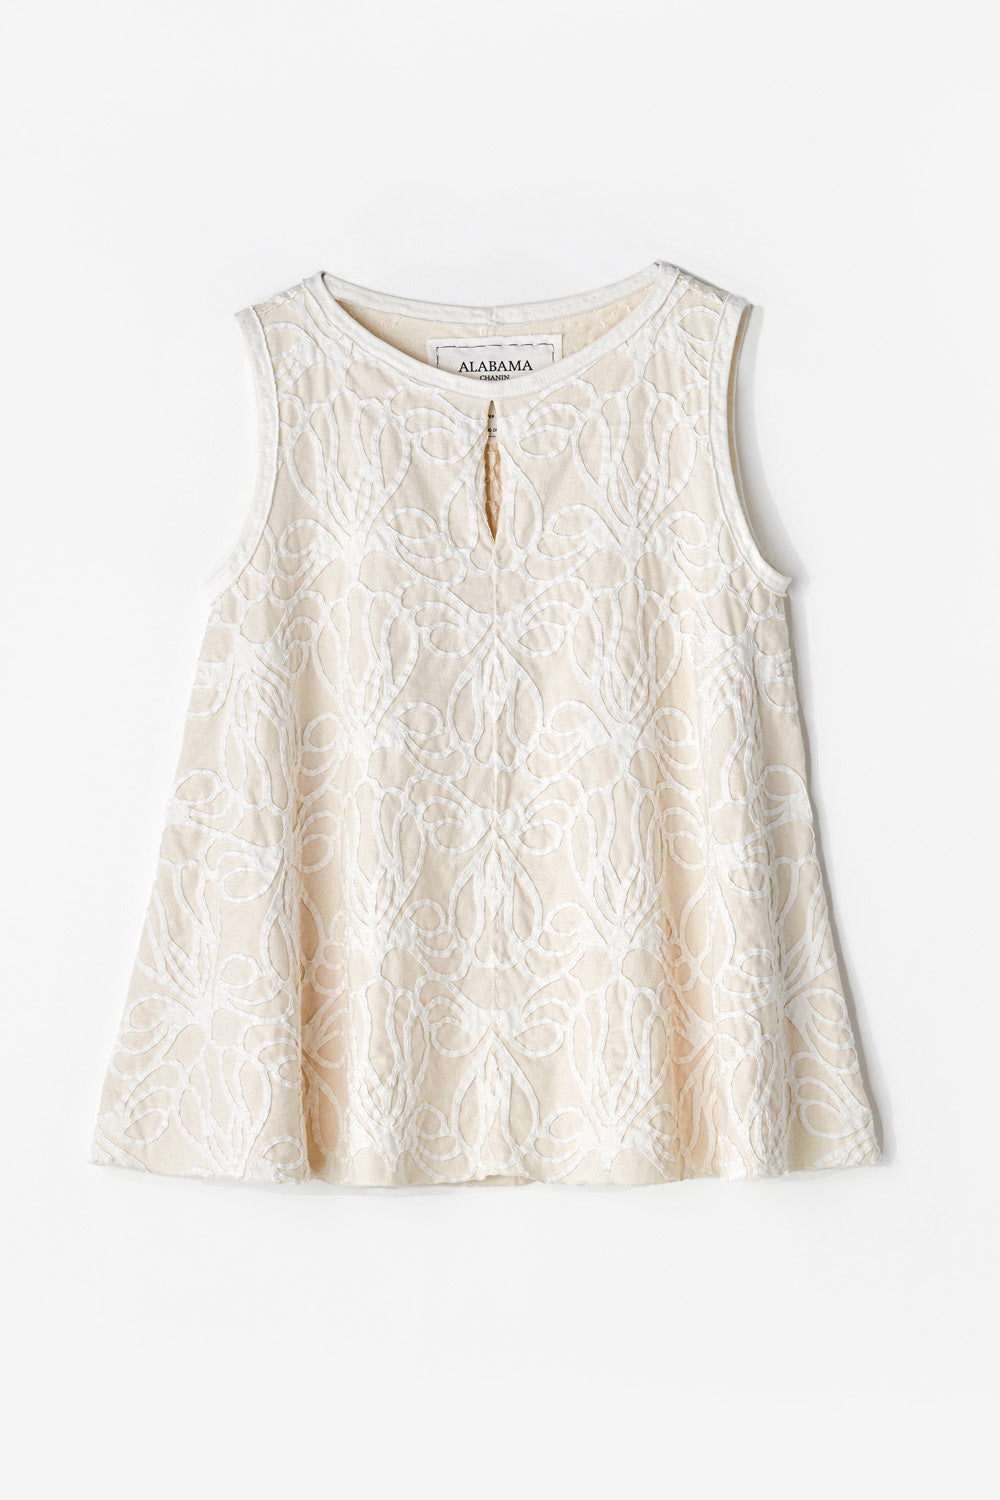 alabama chanin lucy eileen top organic cotton sleeveless top with floral pattern